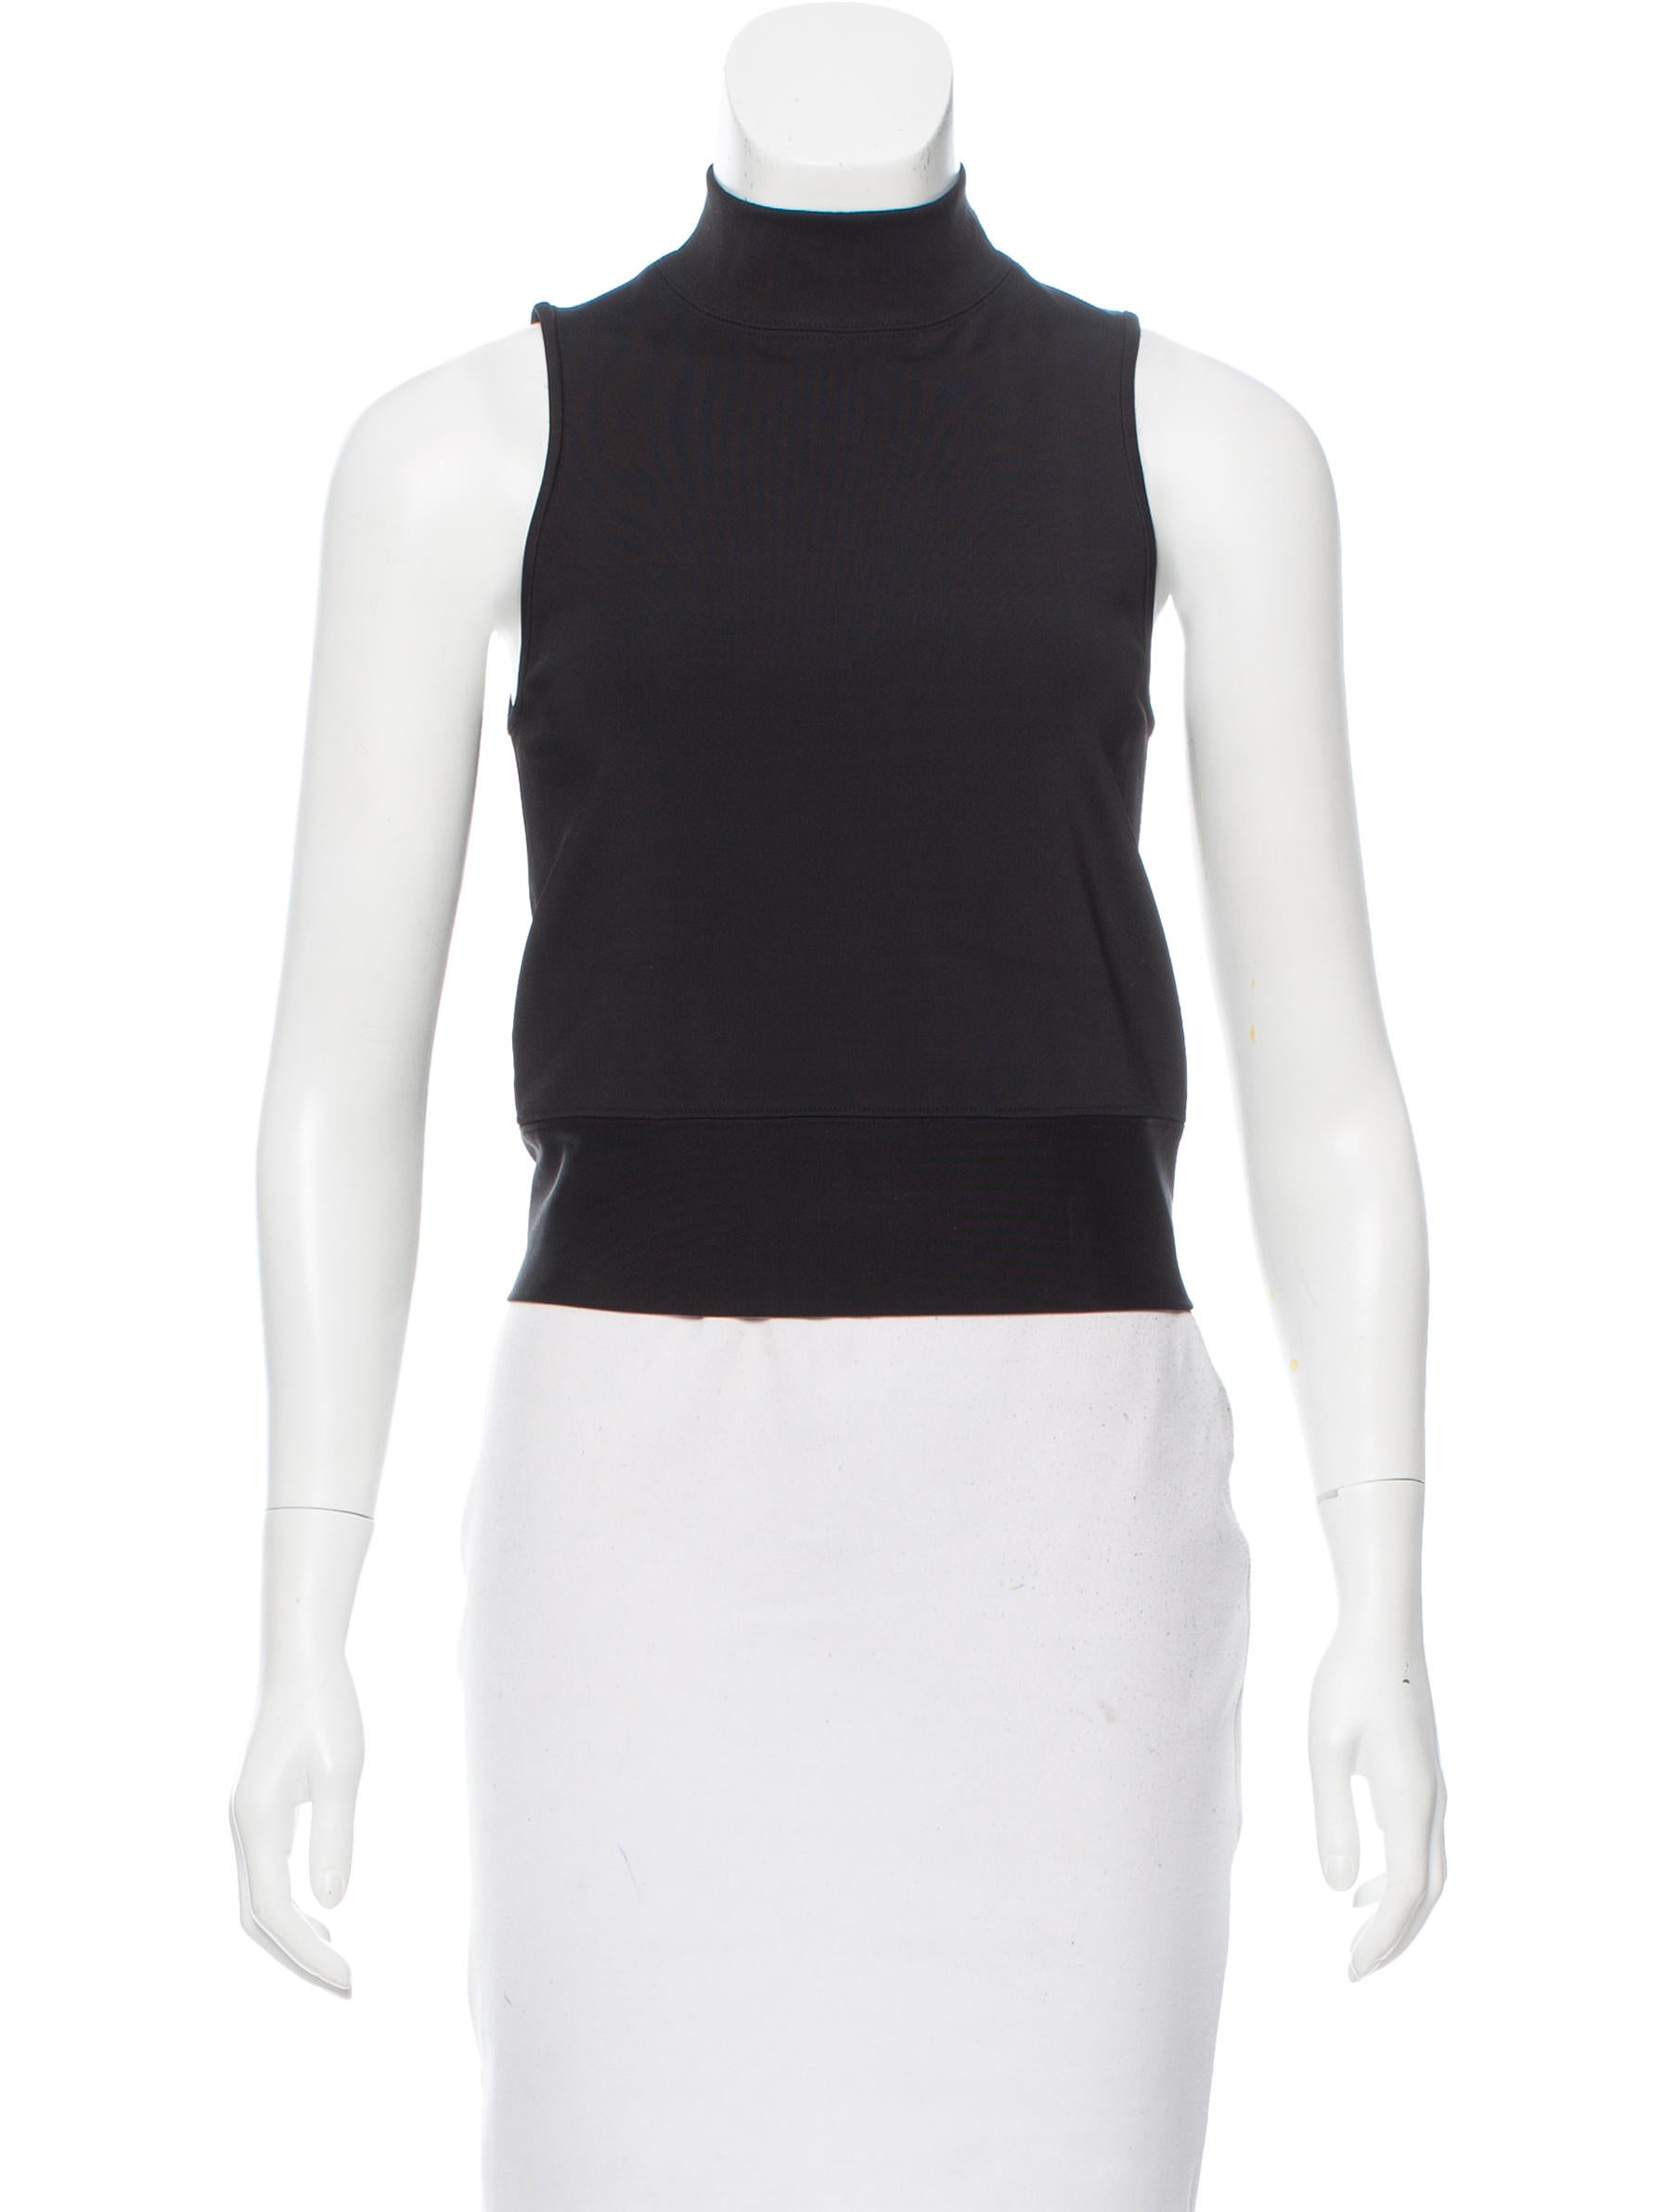 Rag bone sleeveless mock neck top clothing for Sleeveless mock turtleneck shirts